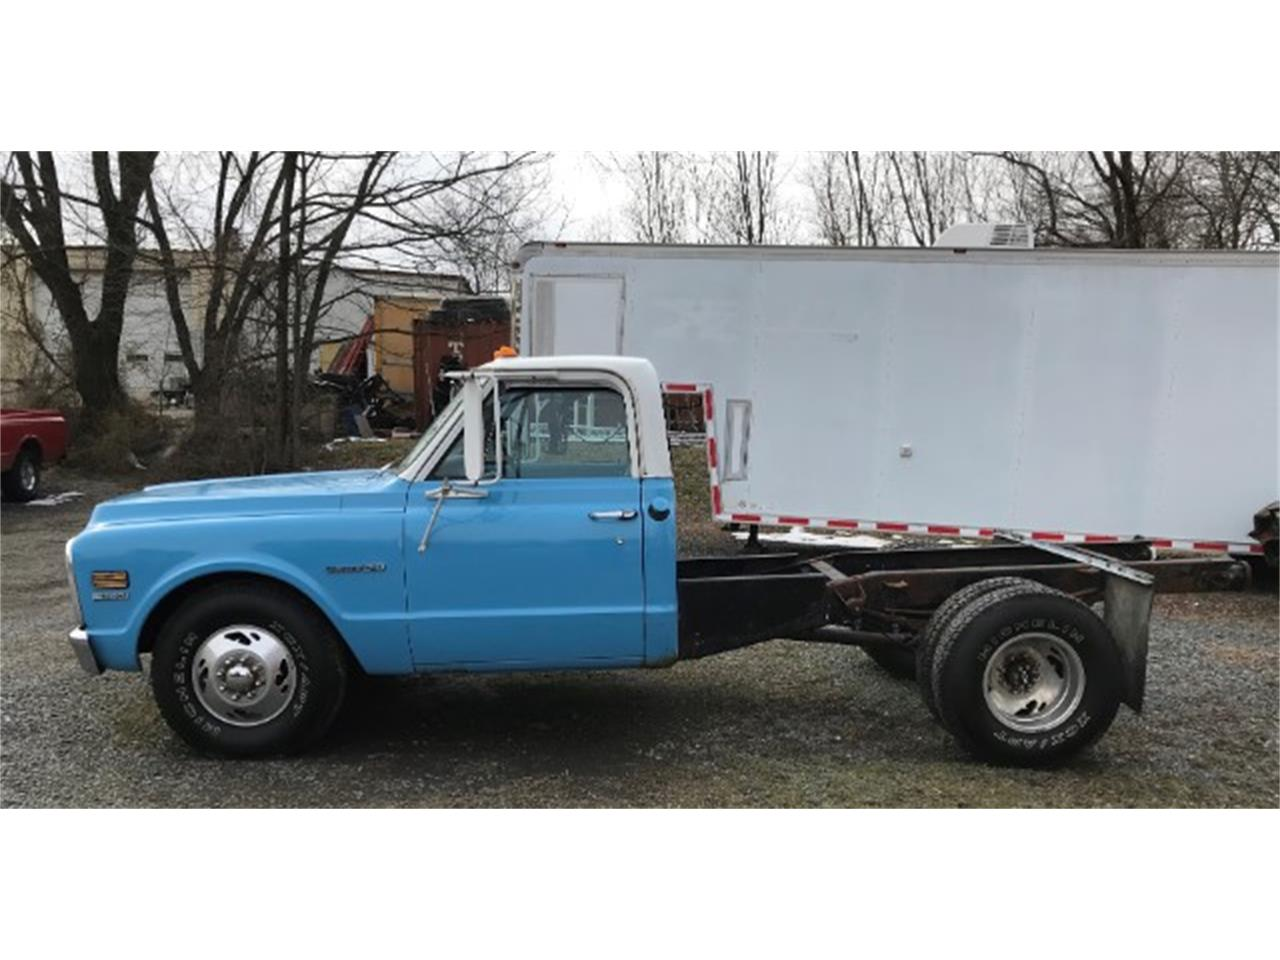 1971 Chevrolet 1 Ton Truck for sale in Harpers Ferry, WV – photo 5